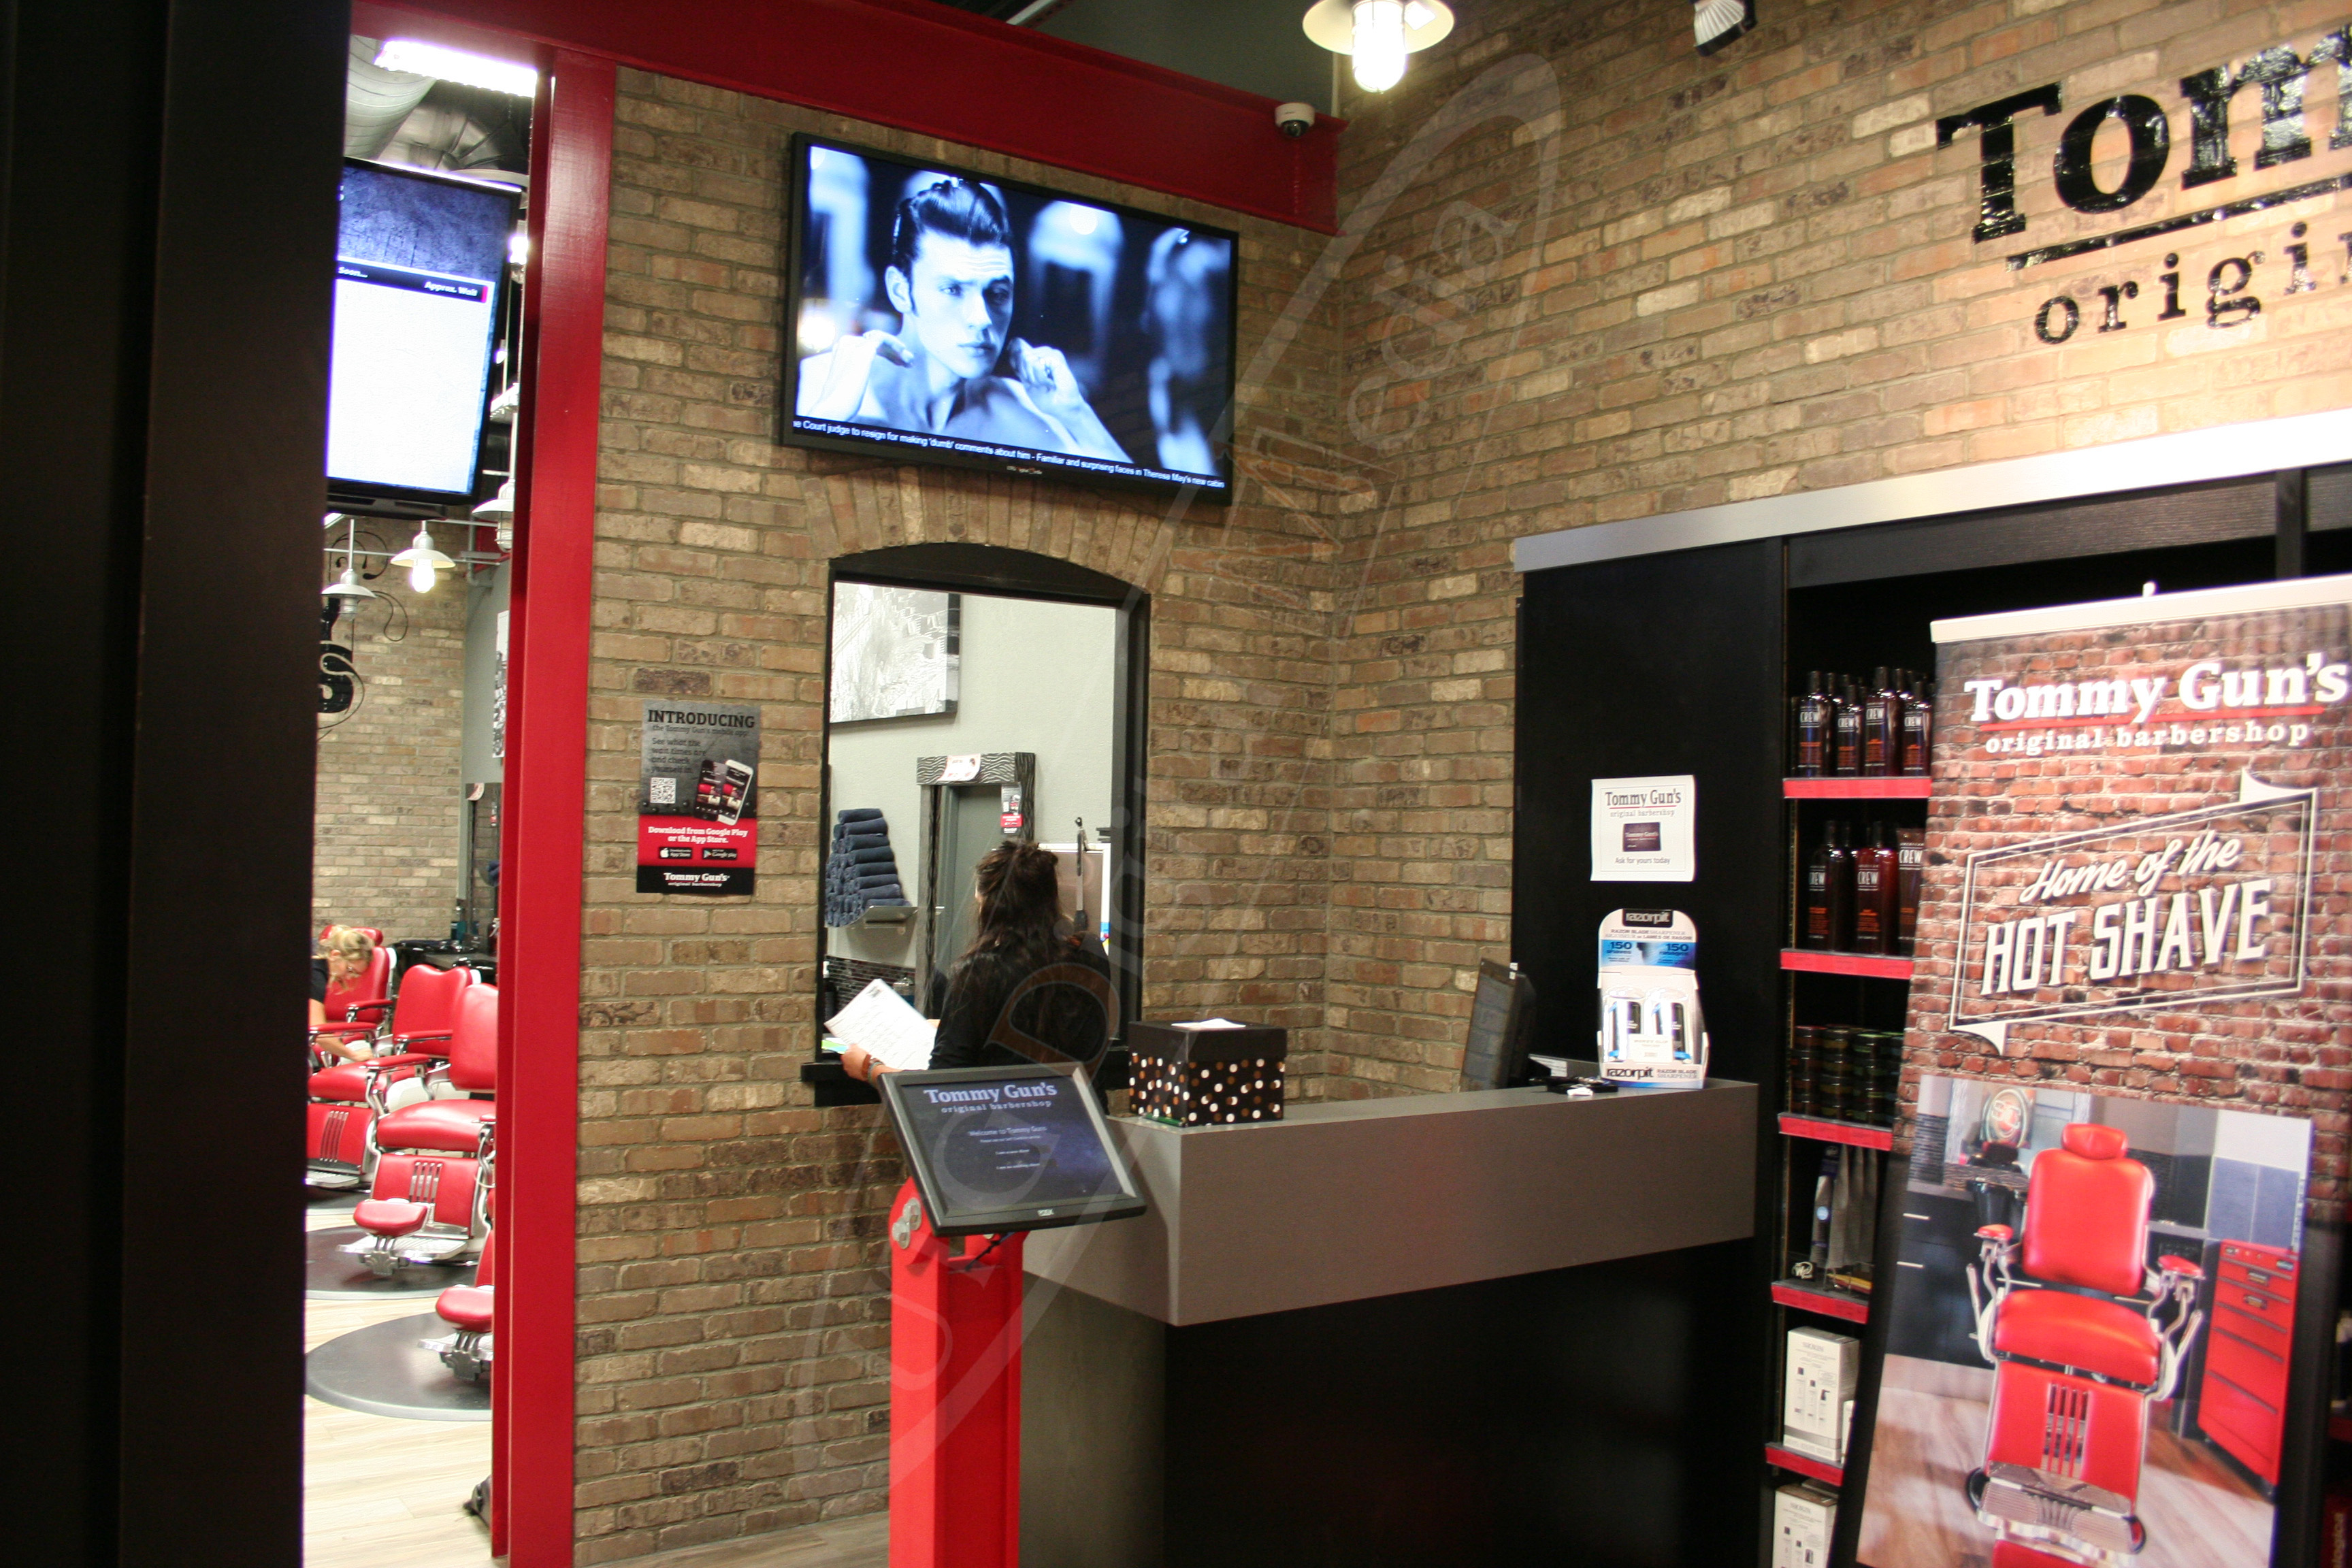 Tommy Gunns Hair Salon – Wall Mounted LCD Screen